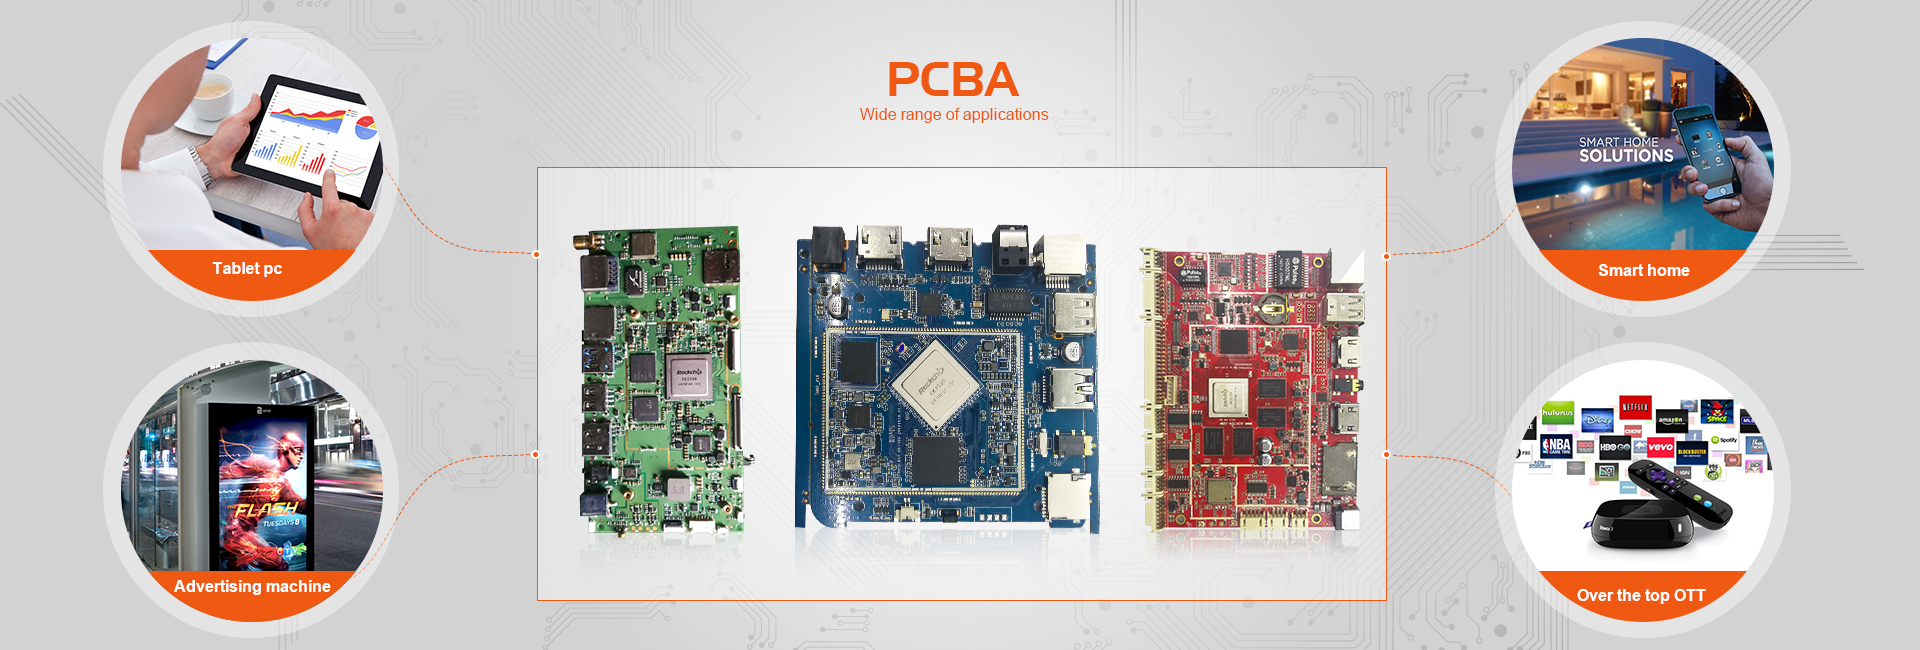 Custom Rockchip RK3288 usb wifi pcb met 4G sim-kaart/pcb android tv box printplaat